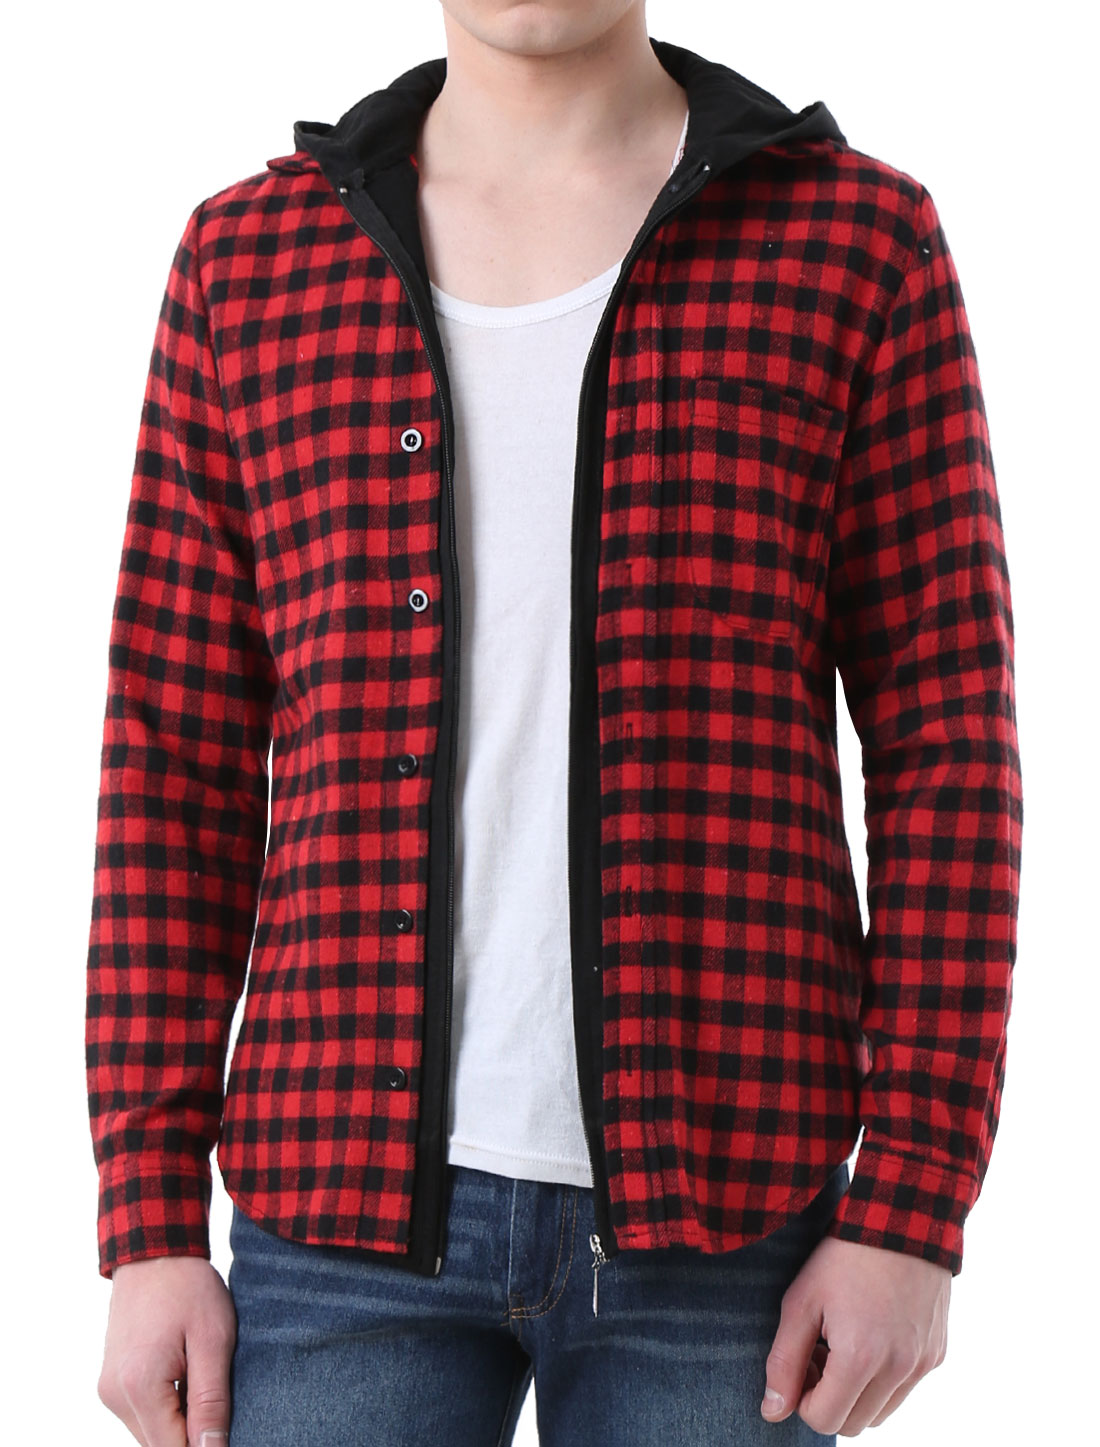 Men Fashion Contrast Check Pattern Chest Pocket Hooded Shirt Black Red M